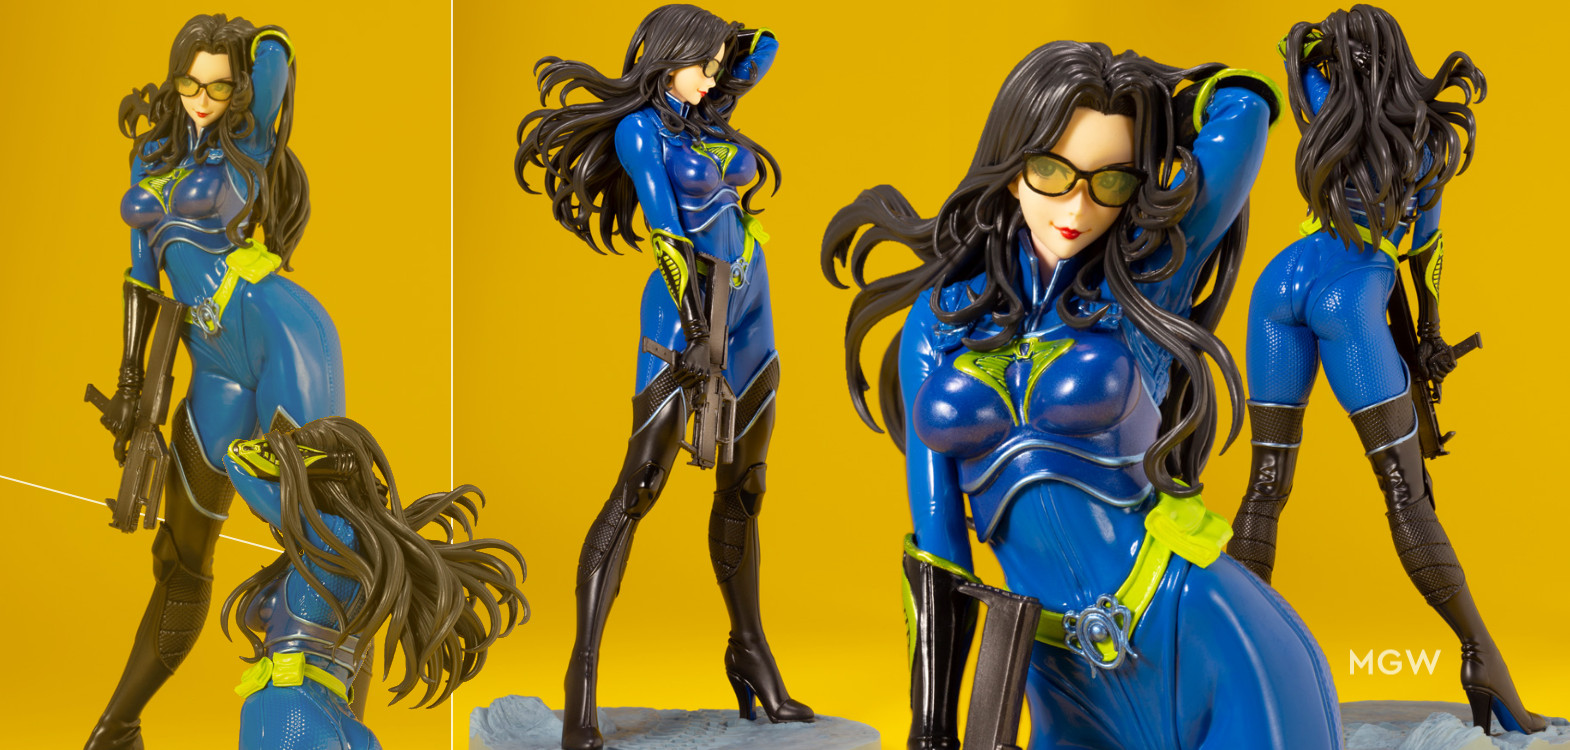 G.I. JOE Bishoujo Baroness 25th Anniversary Blue Limited Edition by Kotobukiya